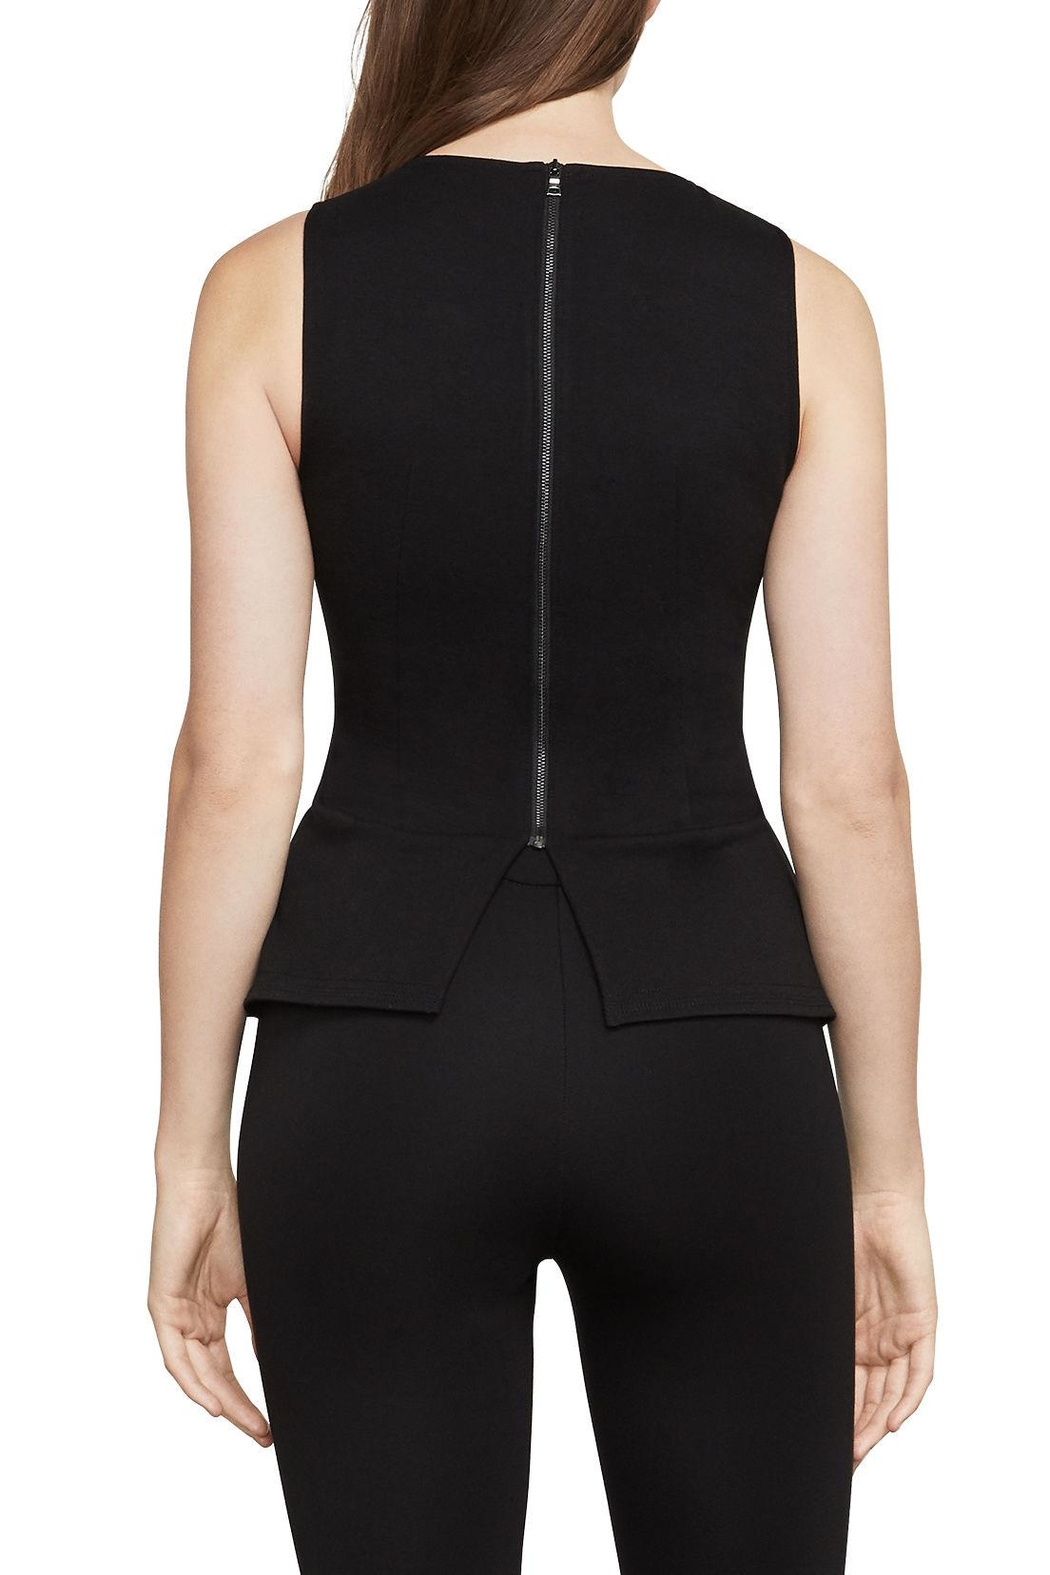 BCBG Max Azria Faux-Leather Peplum Top - Front Full Image